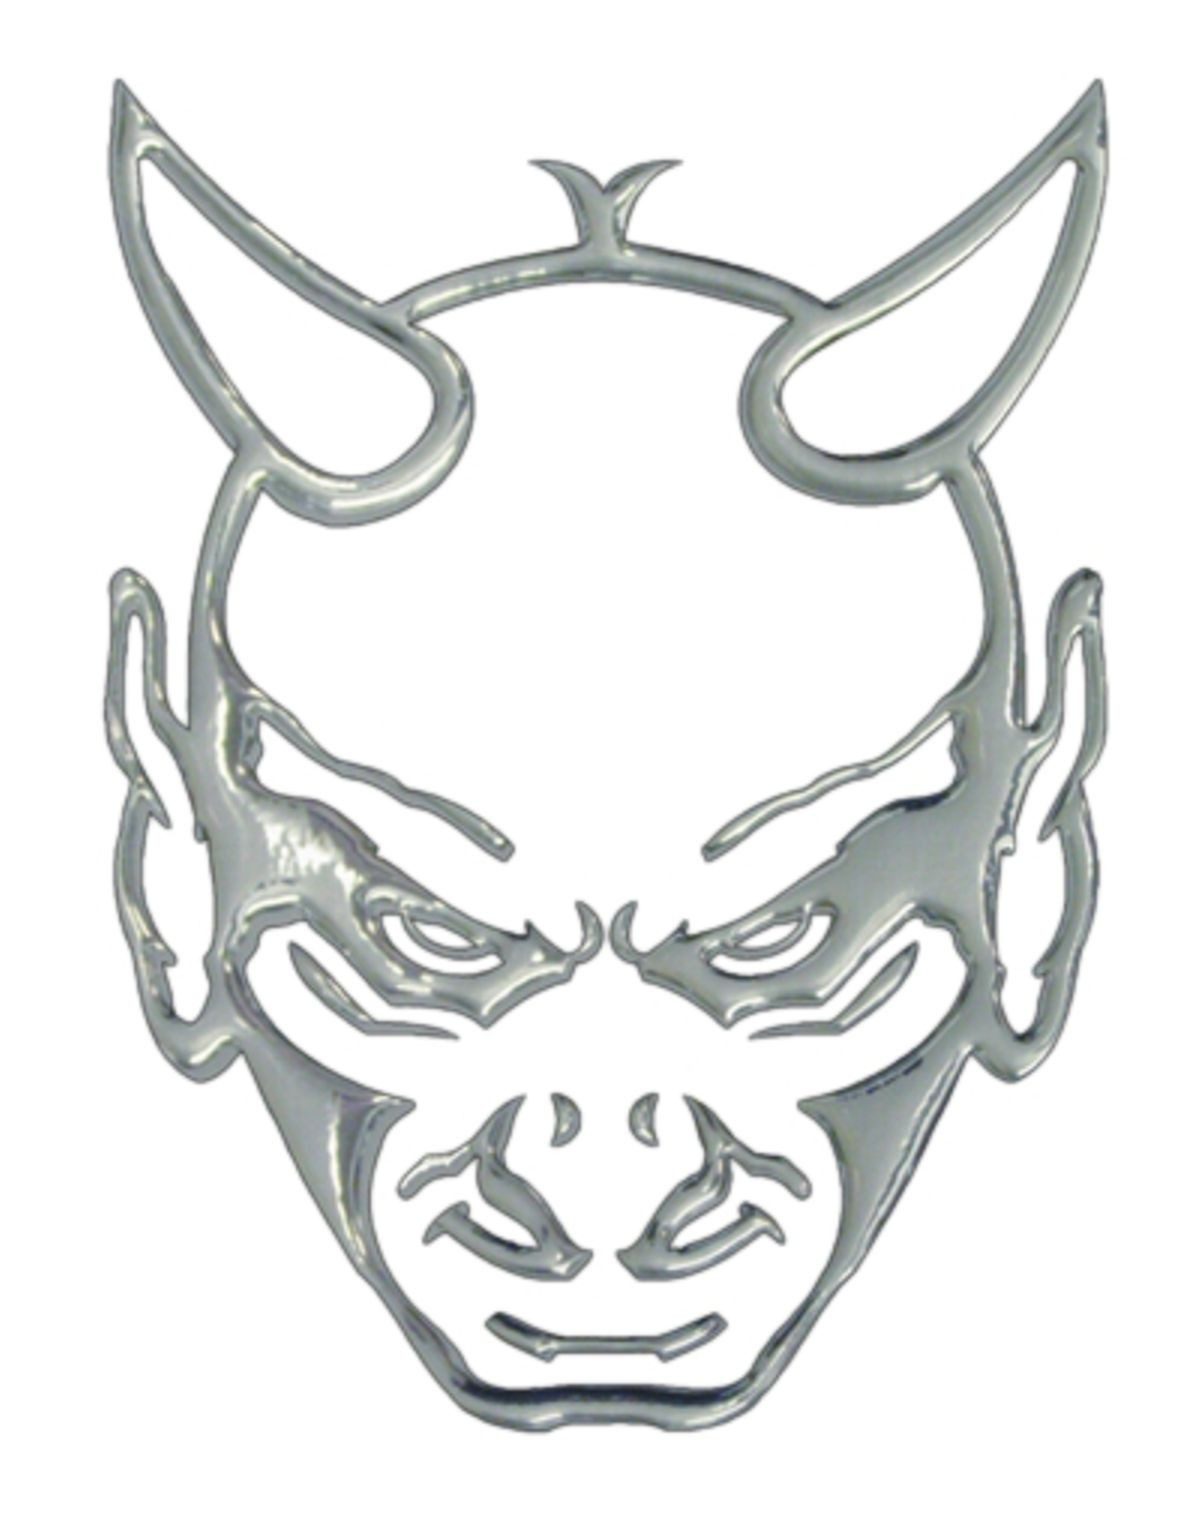 3D-Chrome-Sticker Devilhead 200 x 145 mm